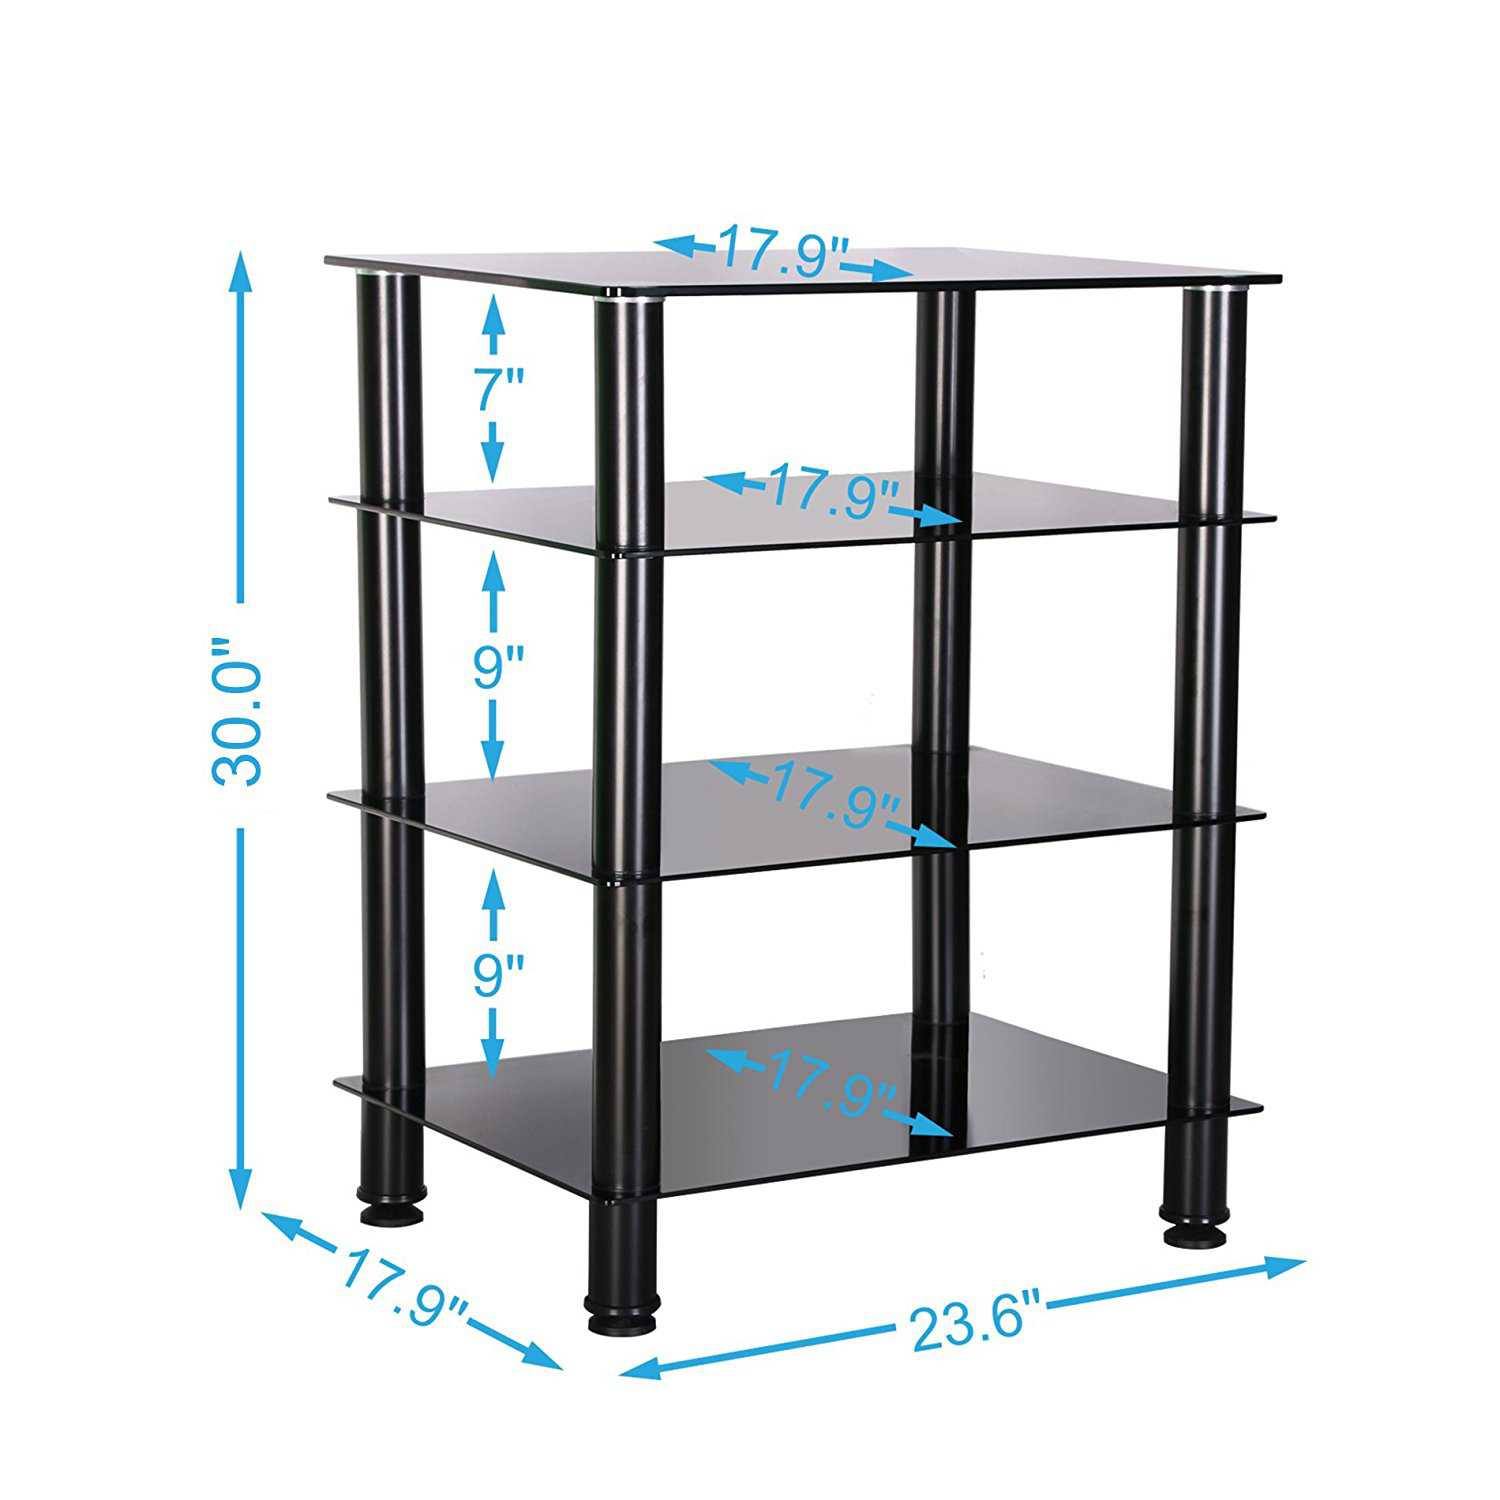 Fitueyes Av shelf Media Component TV Stand Audio Cabinet with Glass Shelf 4-tier F1AS406001GB